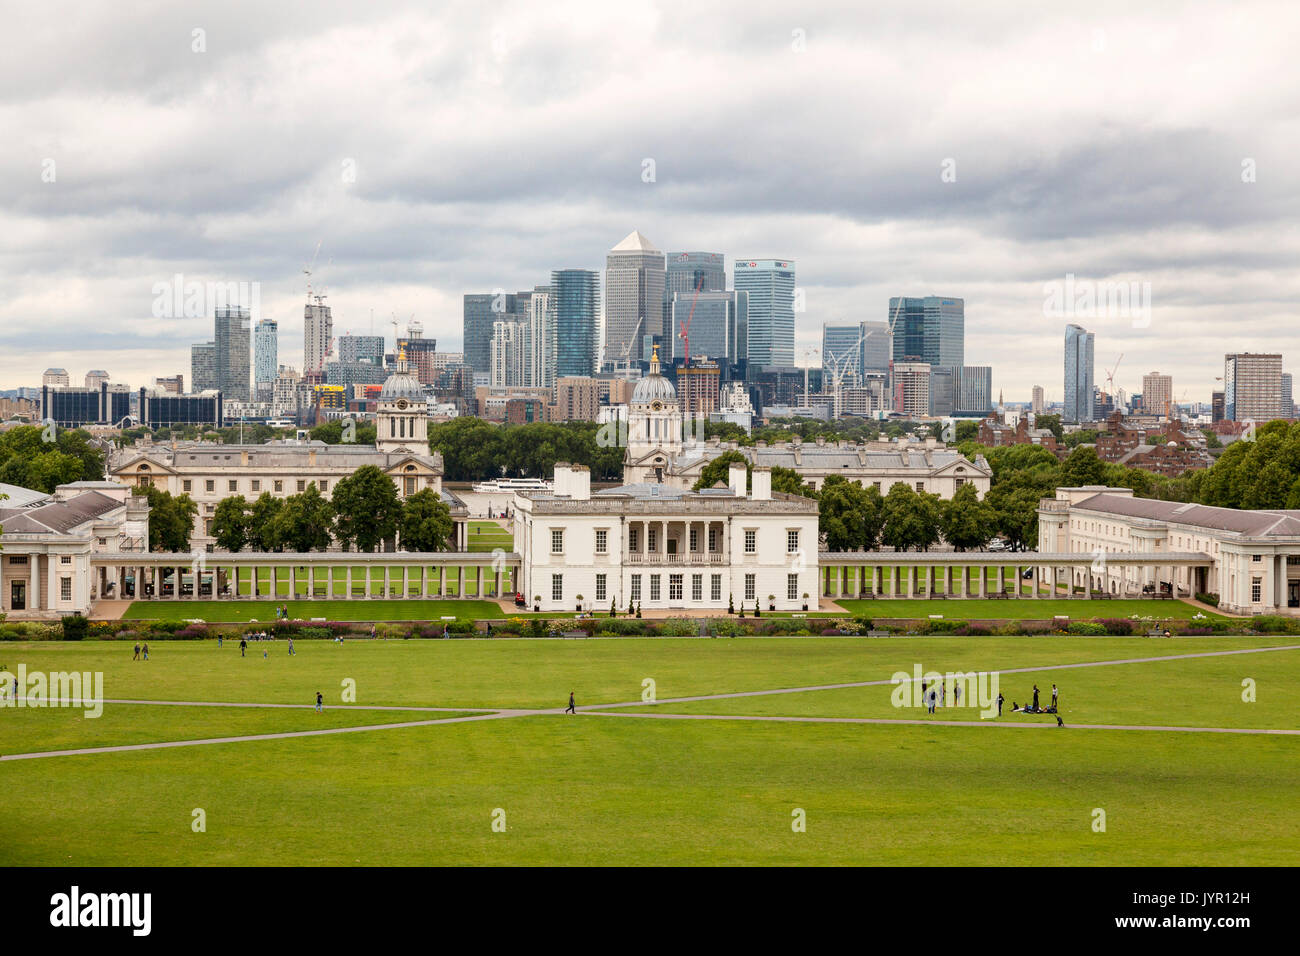 The Royal Maritime Museum viewed from The Royal Observatory, Greenwich, England - Stock Image